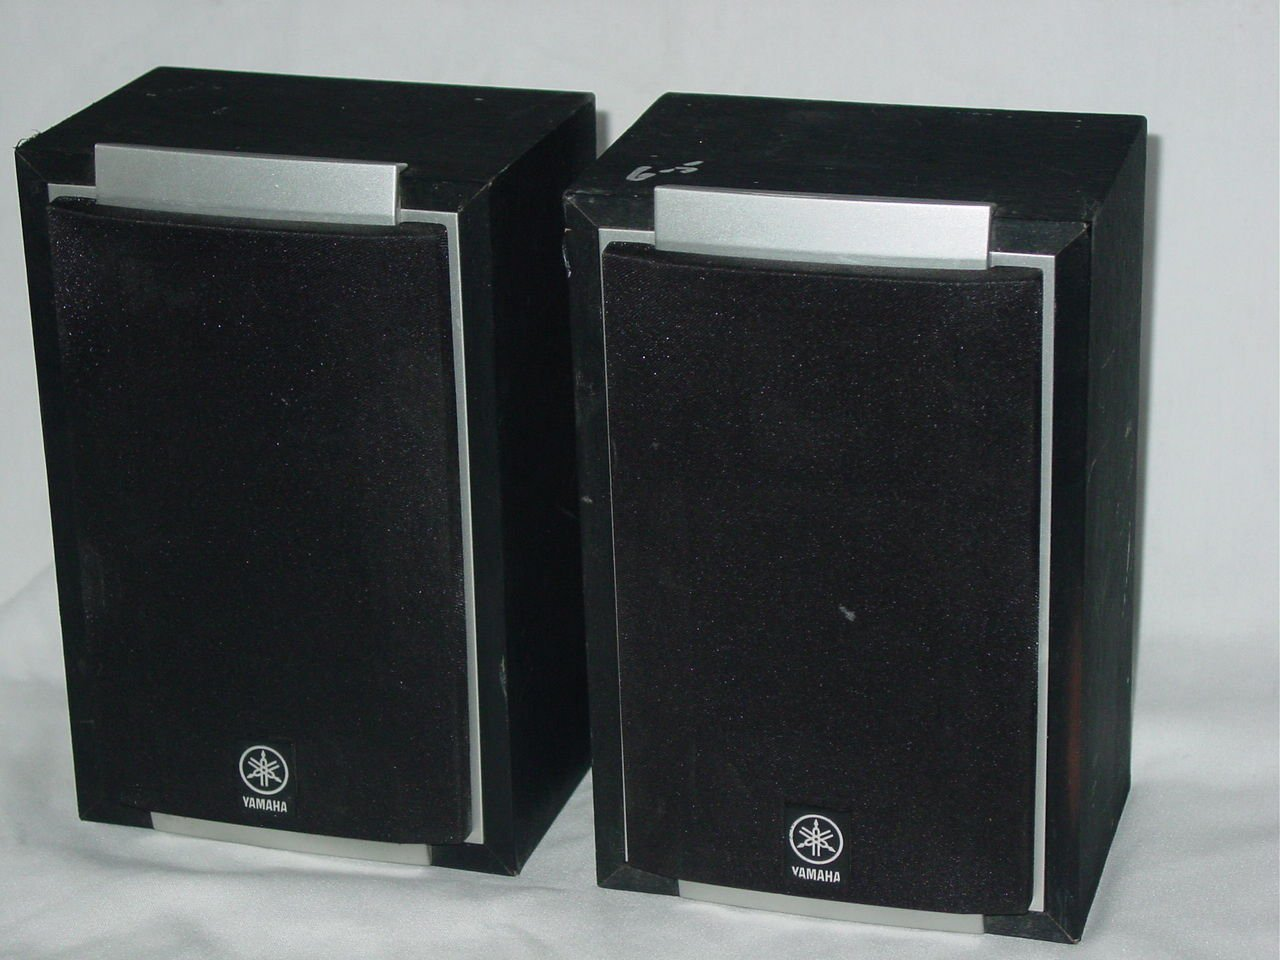 Yamaha NS-AP5705BLS Rear Speaker Pair for NS-AP5705 Home Theater System